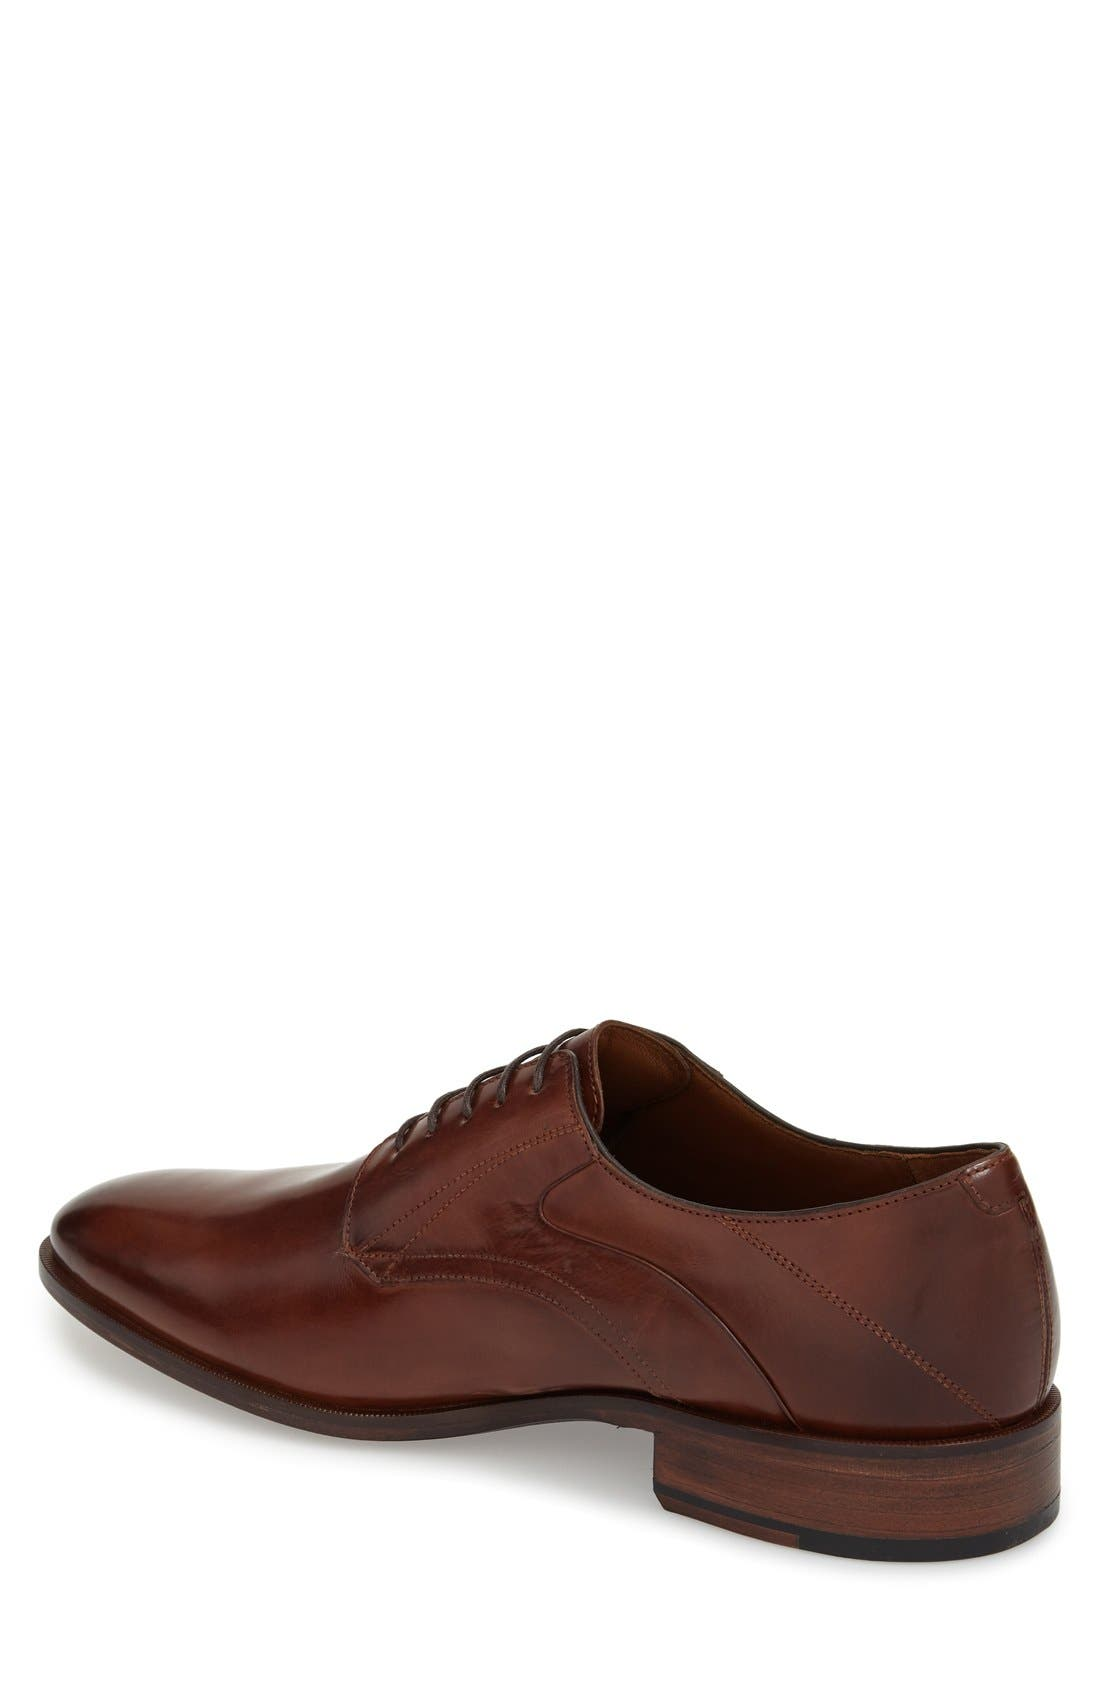 'Nolen' Plain Toe Derby,                             Alternate thumbnail 6, color,                             206